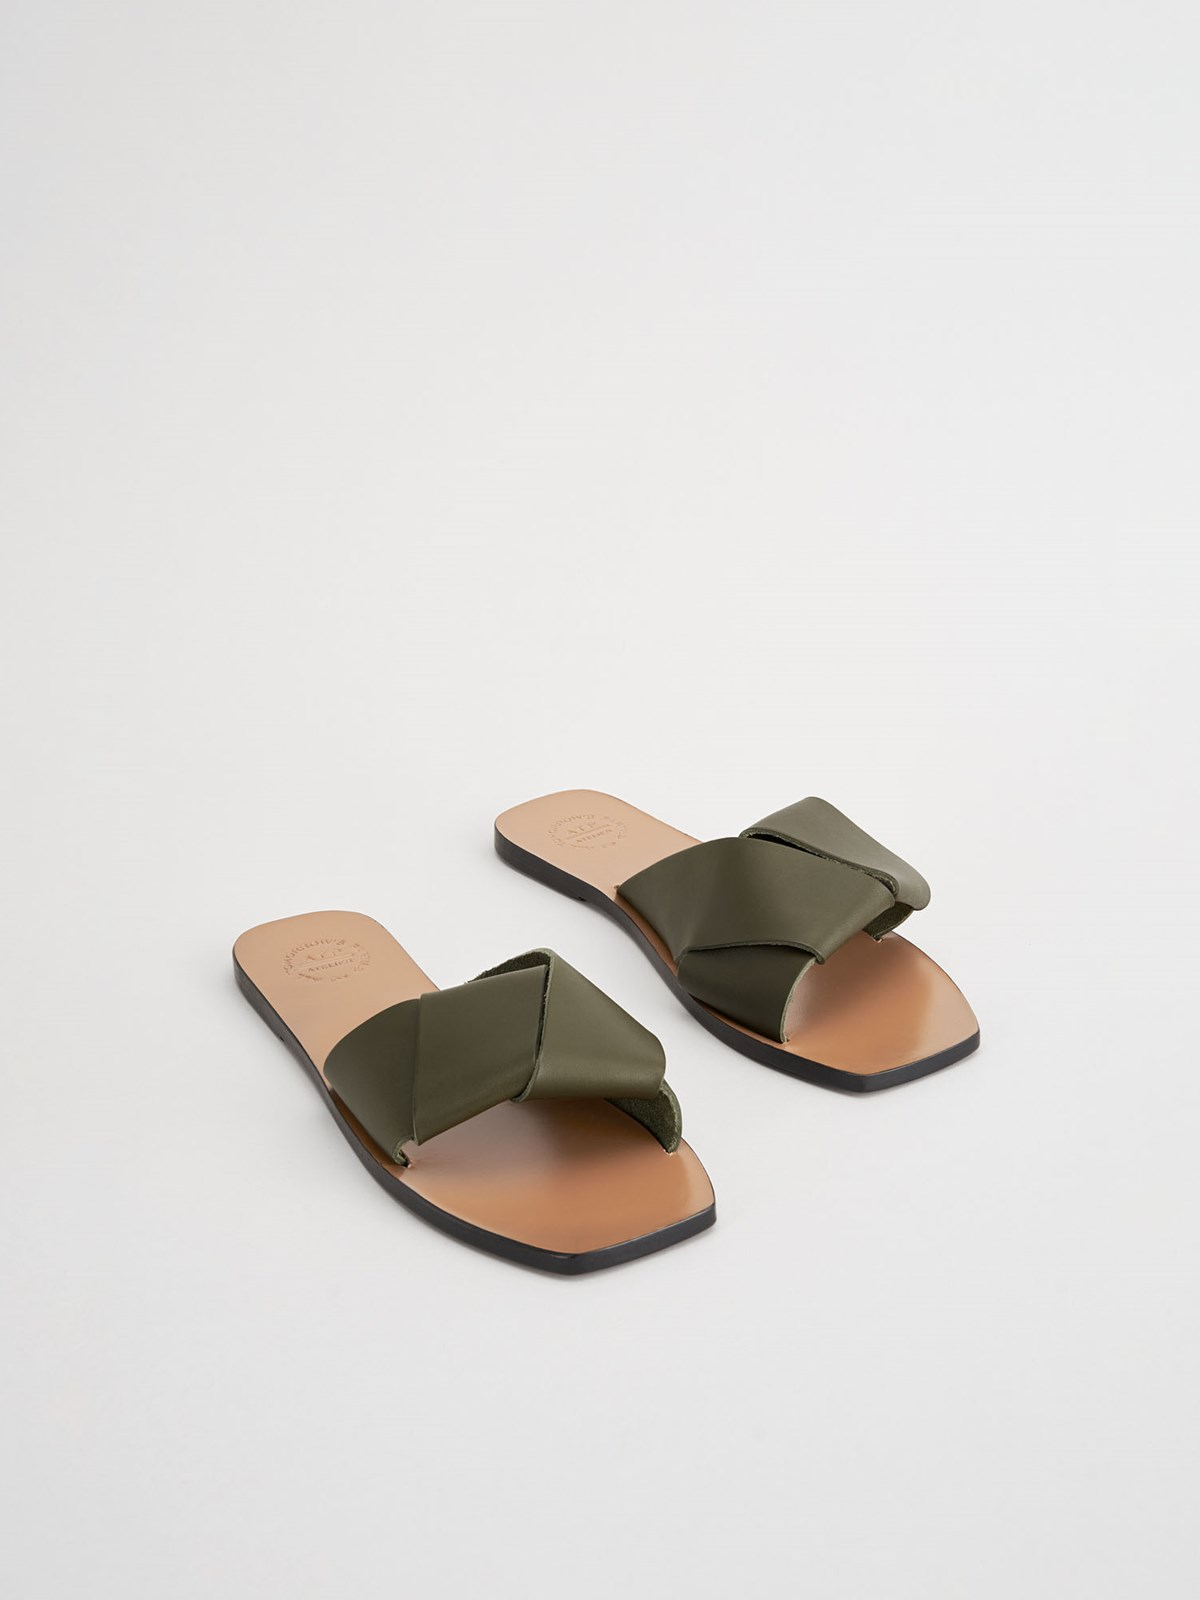 Carpari Turtle Flat Sandals